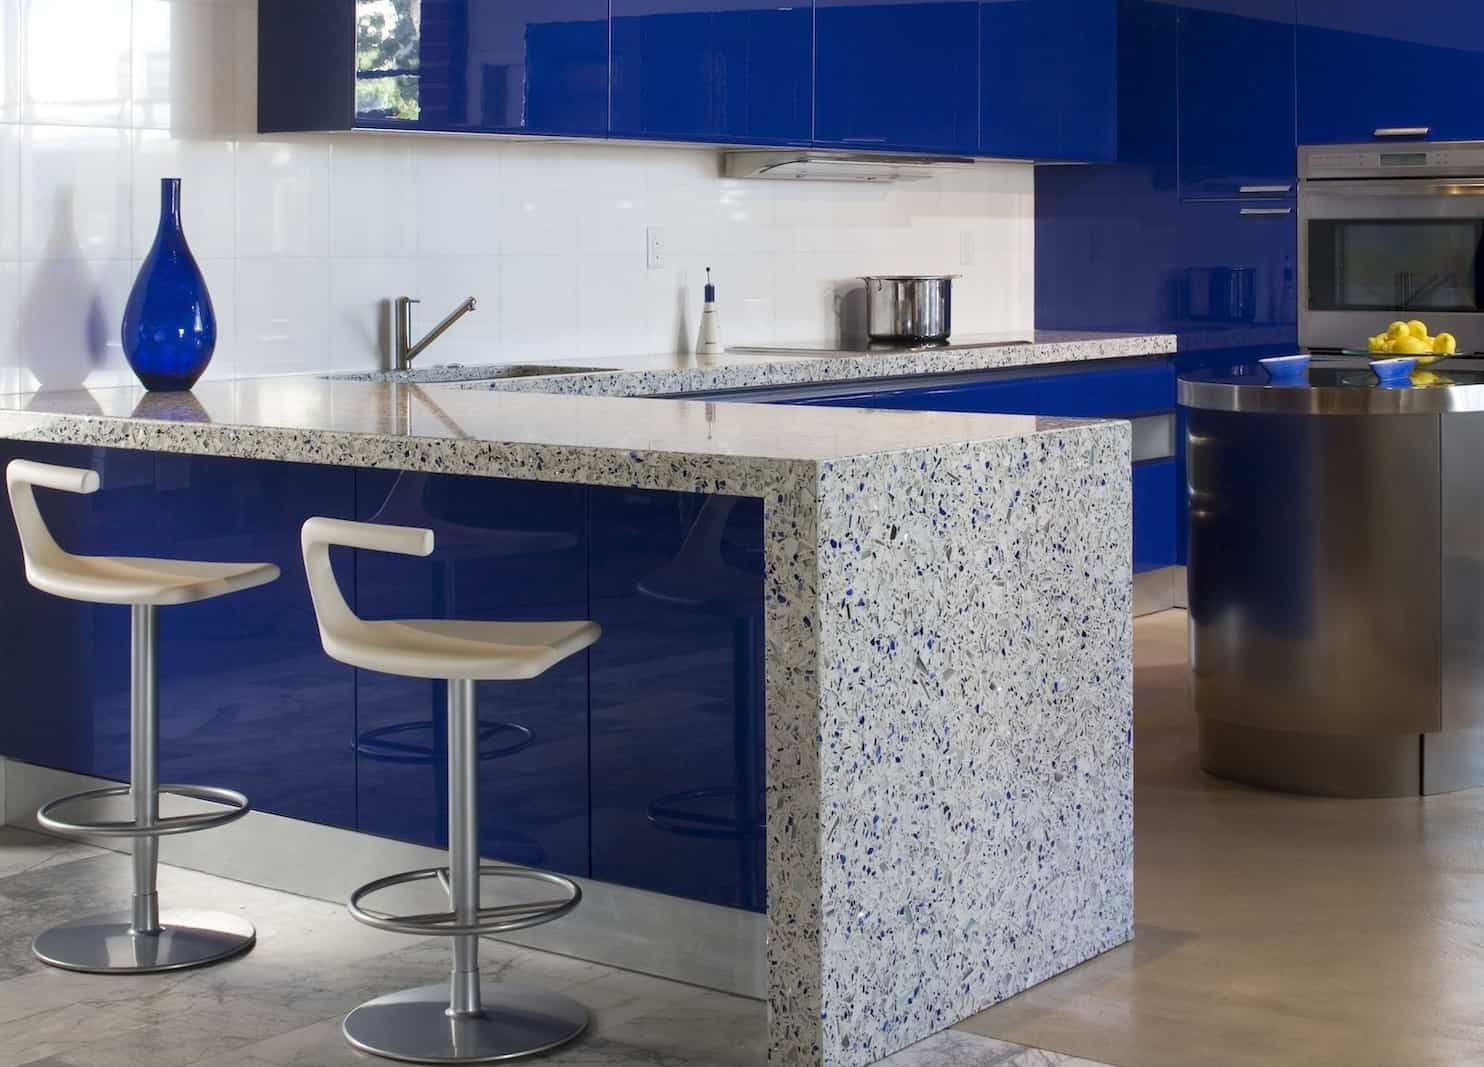 rooms ideas blue kitchen countertops hgtv kitchens pictures design countertop from painting